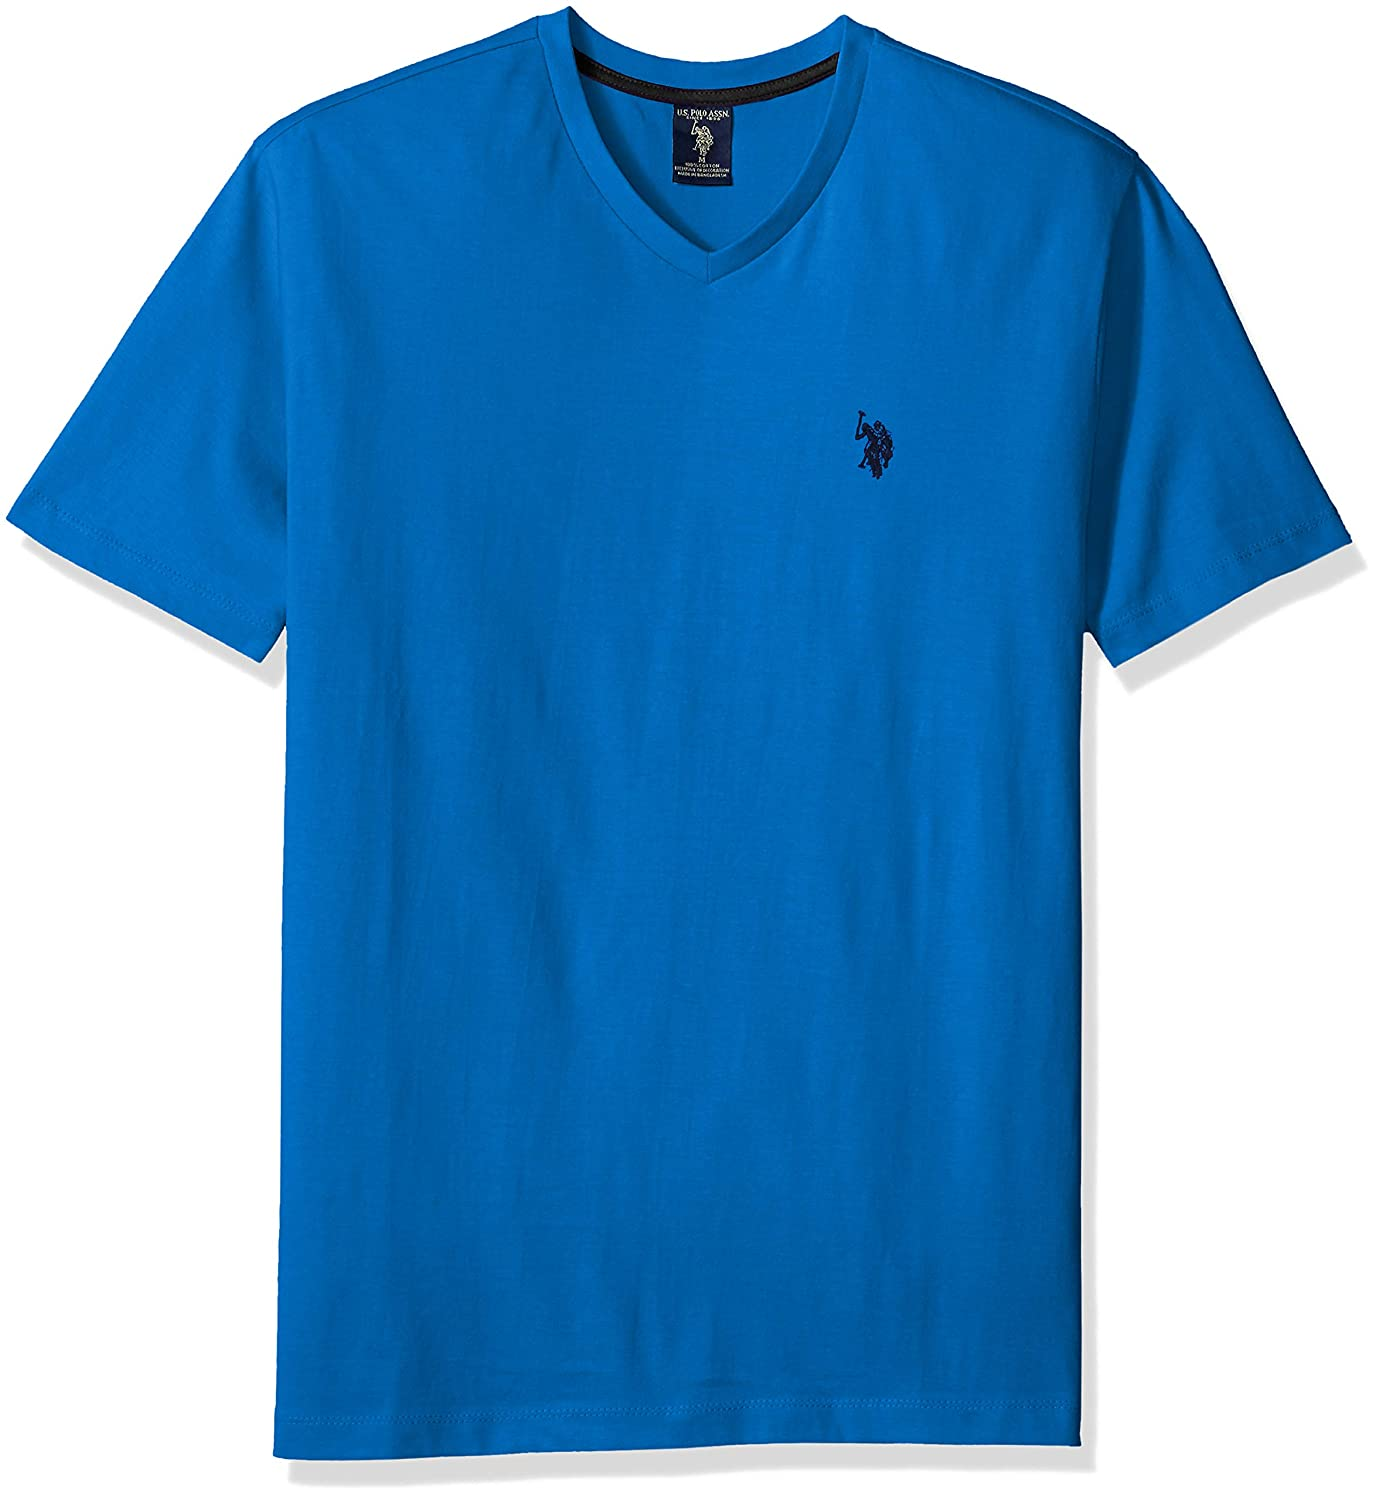 U.S. Polo Assn. Men's V-Neck T-Shirt 11390304